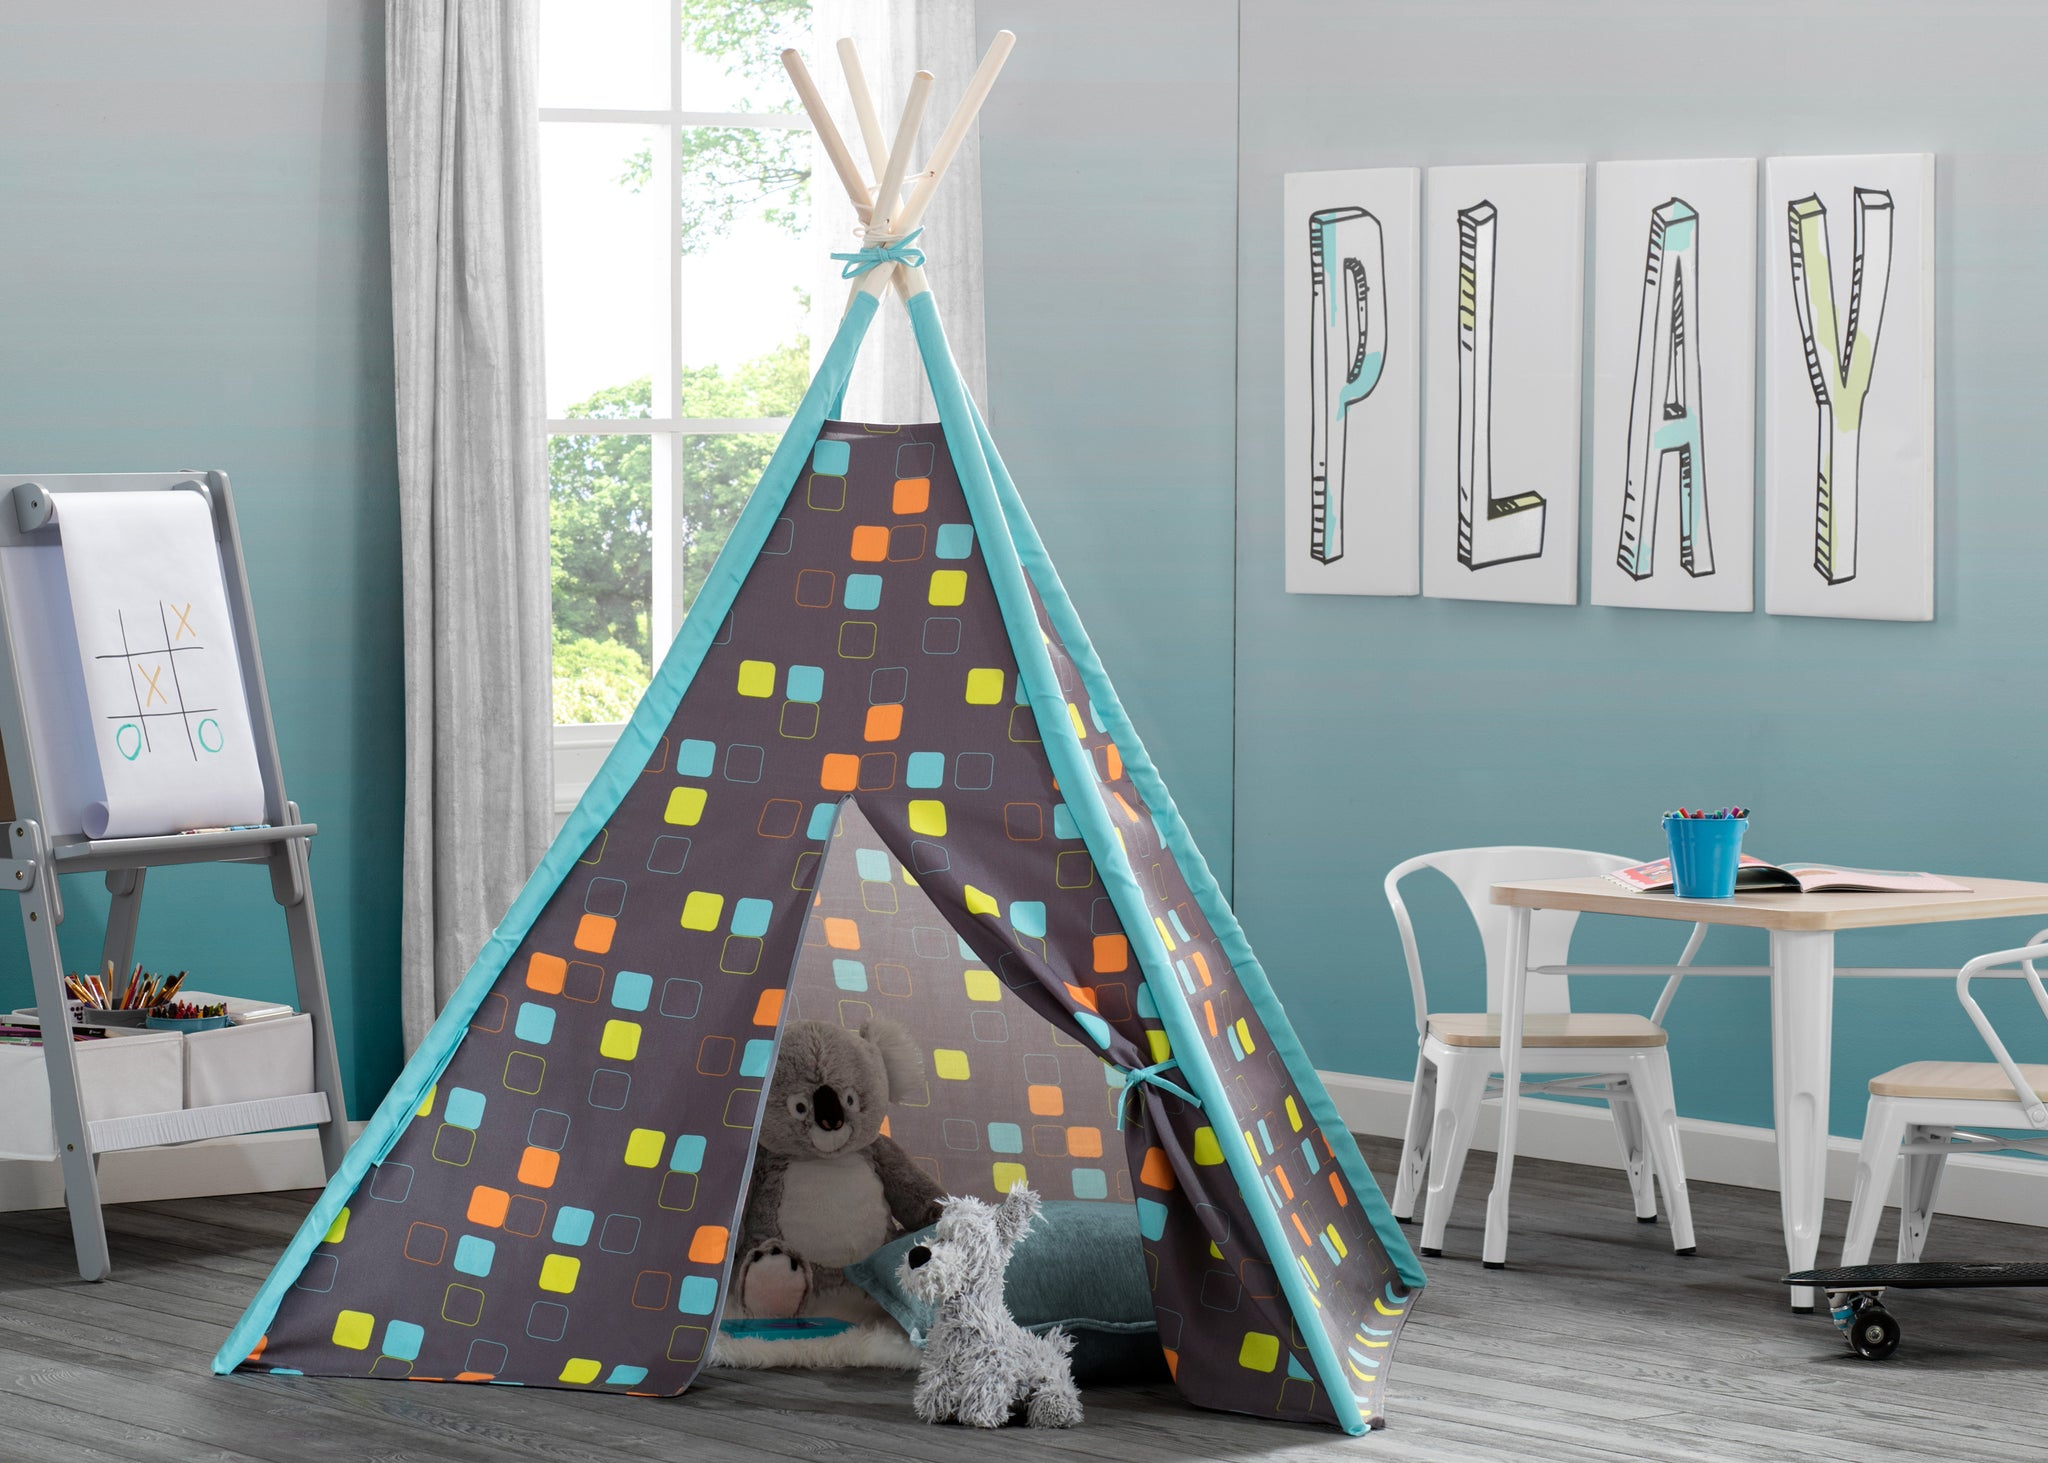 Delta Children Geometric Squares (999) Teepee Play Tent for Kids, Hangtag View